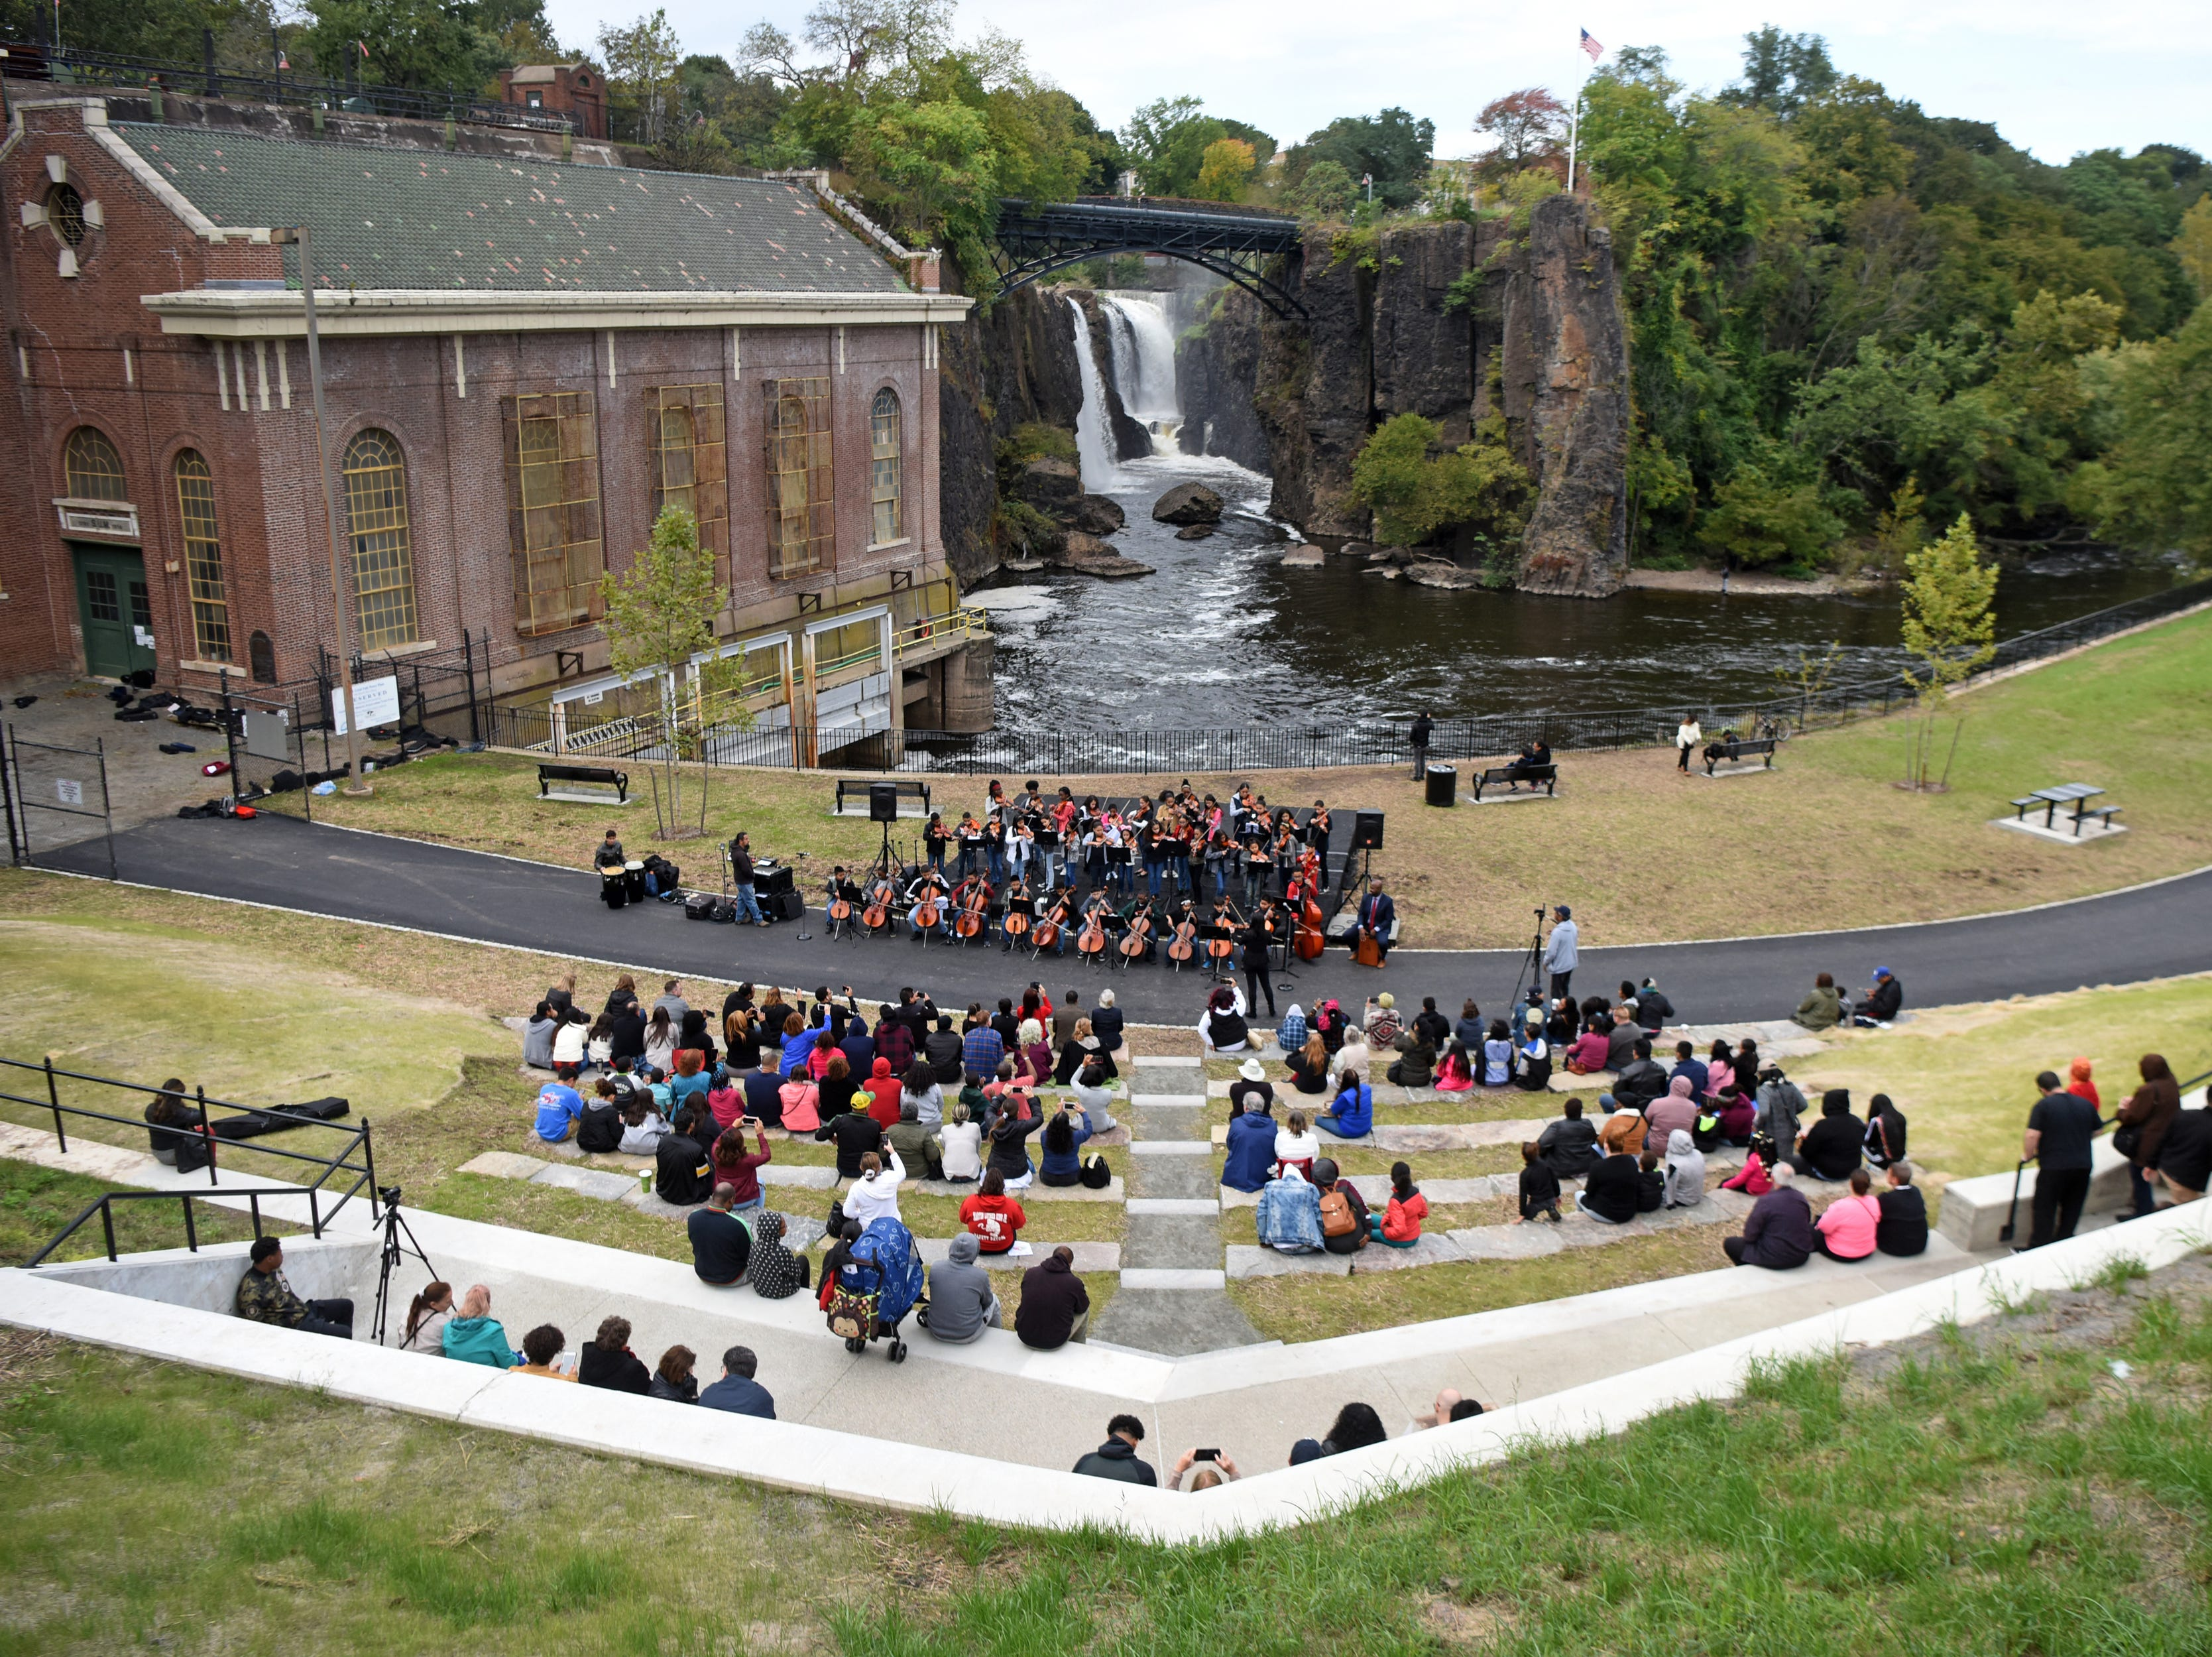 The 2018 Art in the Park Showcase was held in Overlook Park, located at the Paterson Great Falls National Historical Park on Sunday, October 14, 2018.